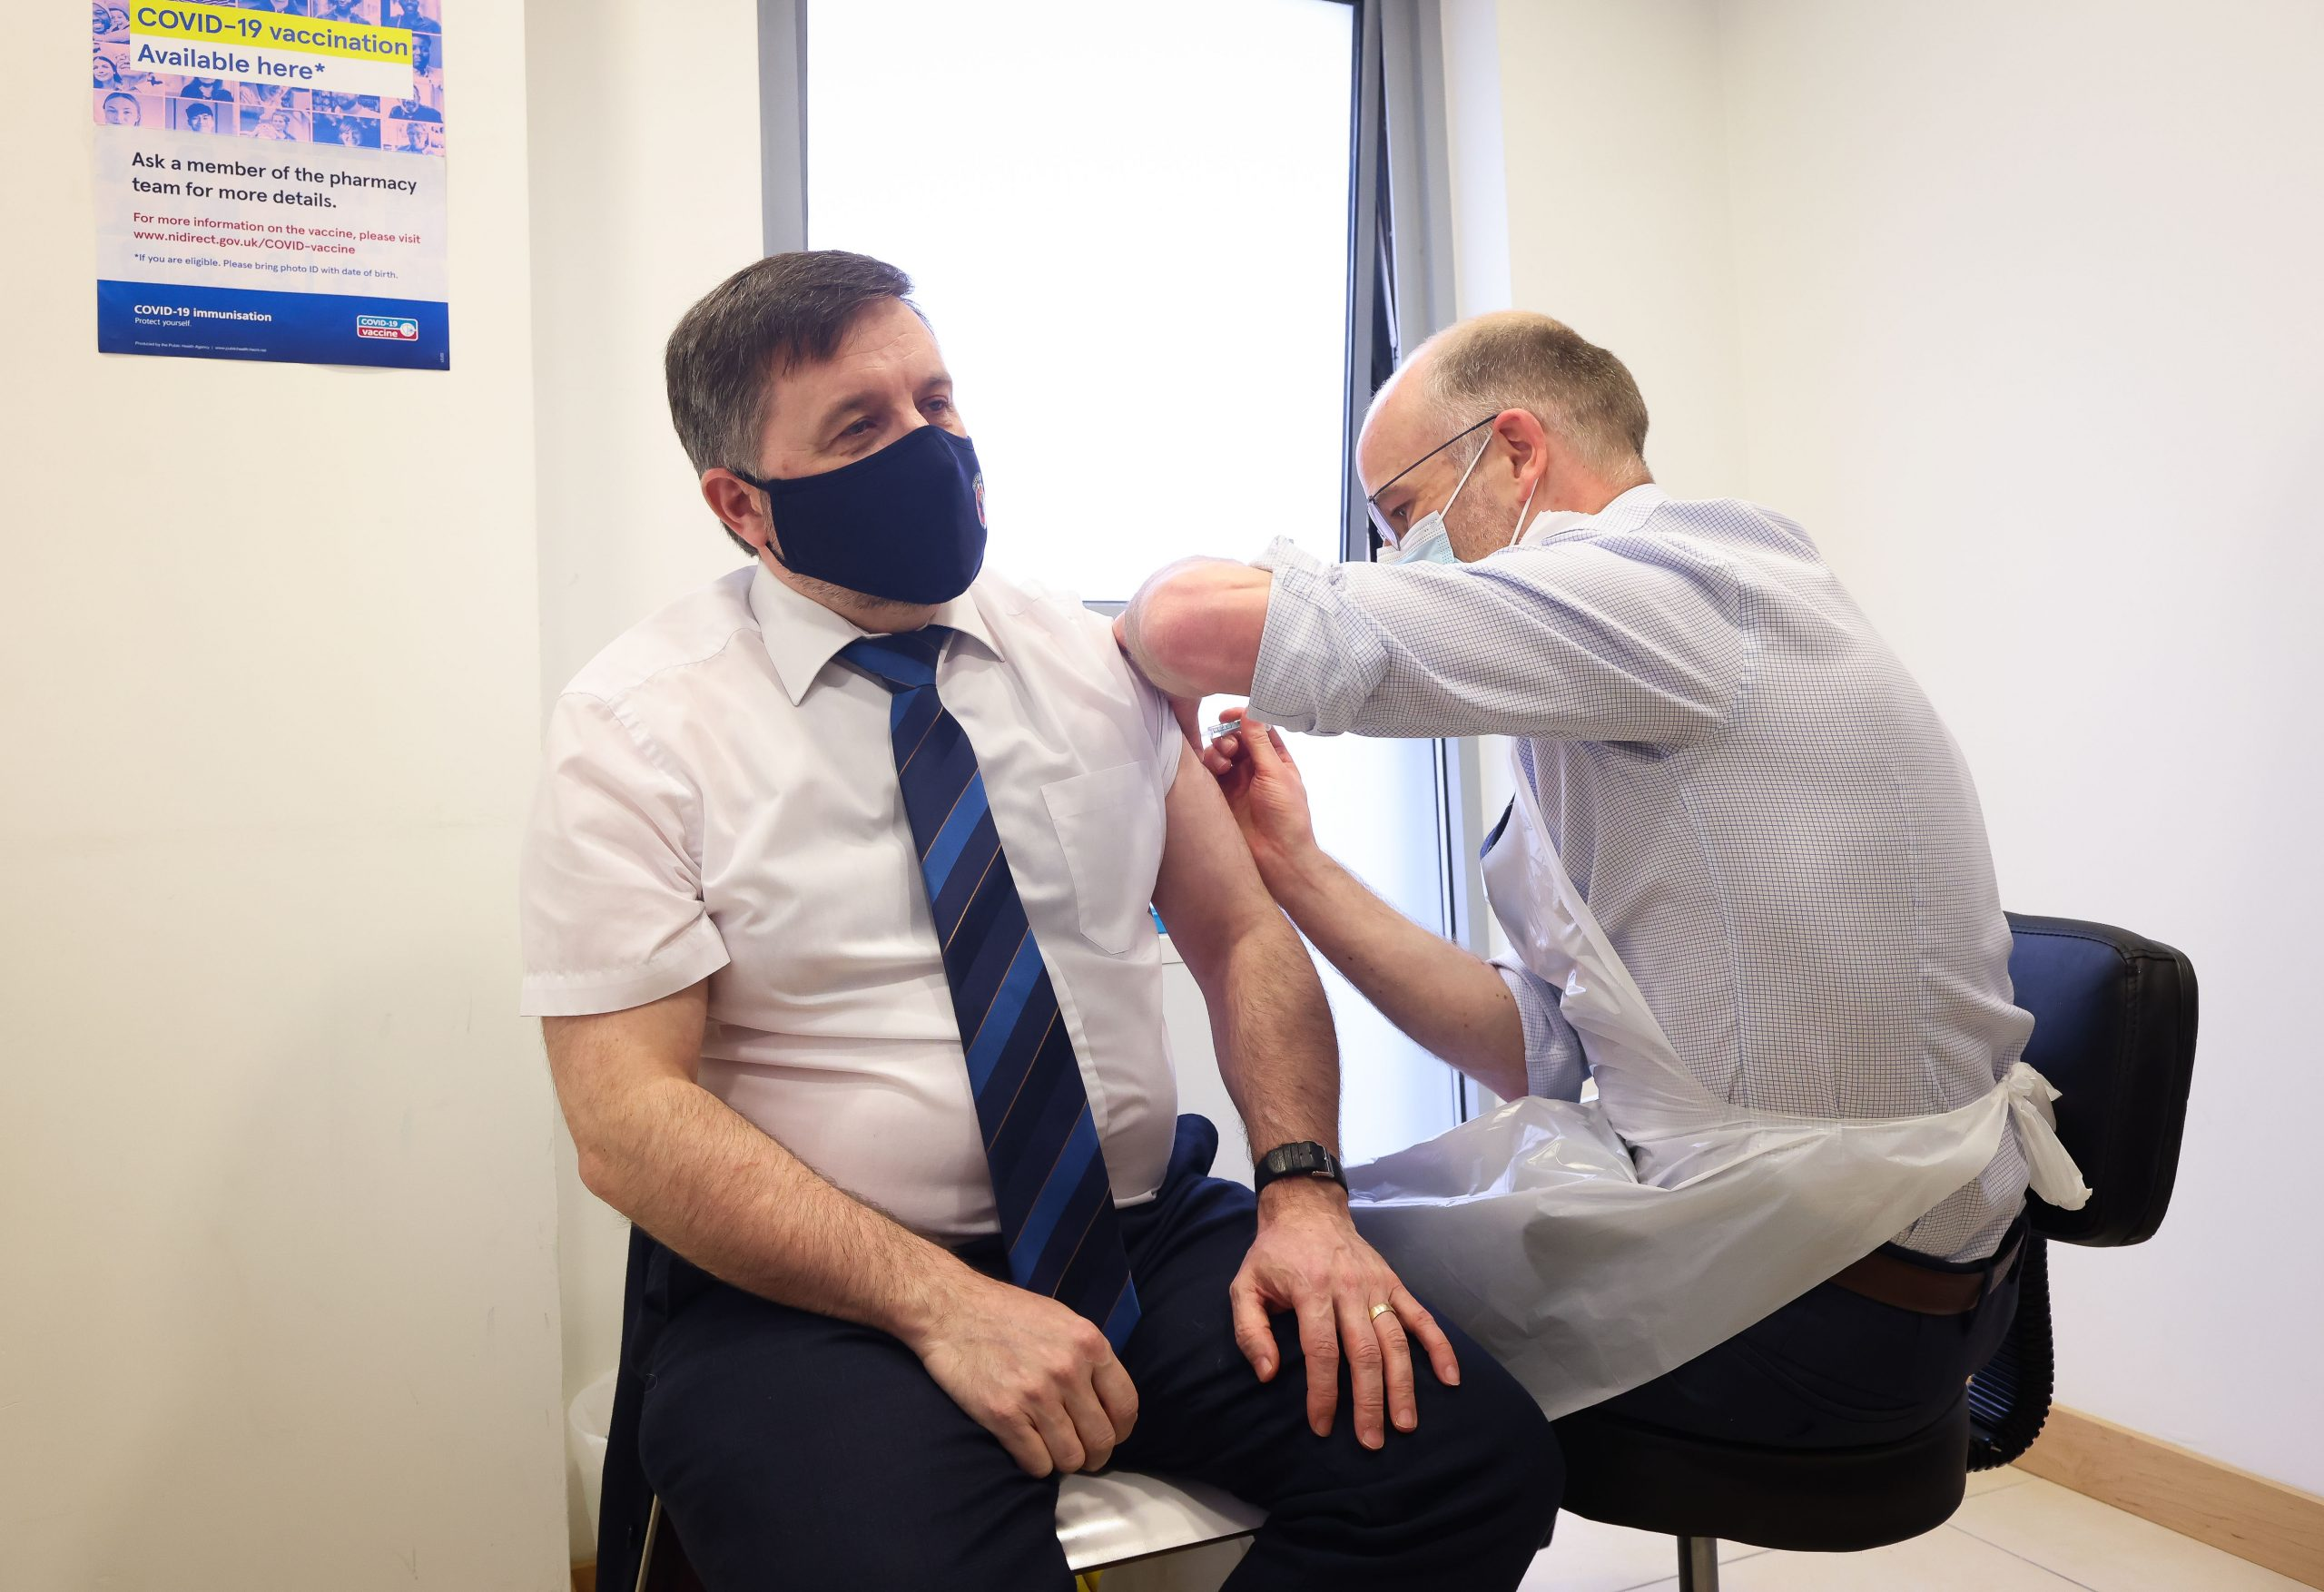 Health Minister receives his Covid-19 vaccine at a community pharmacy